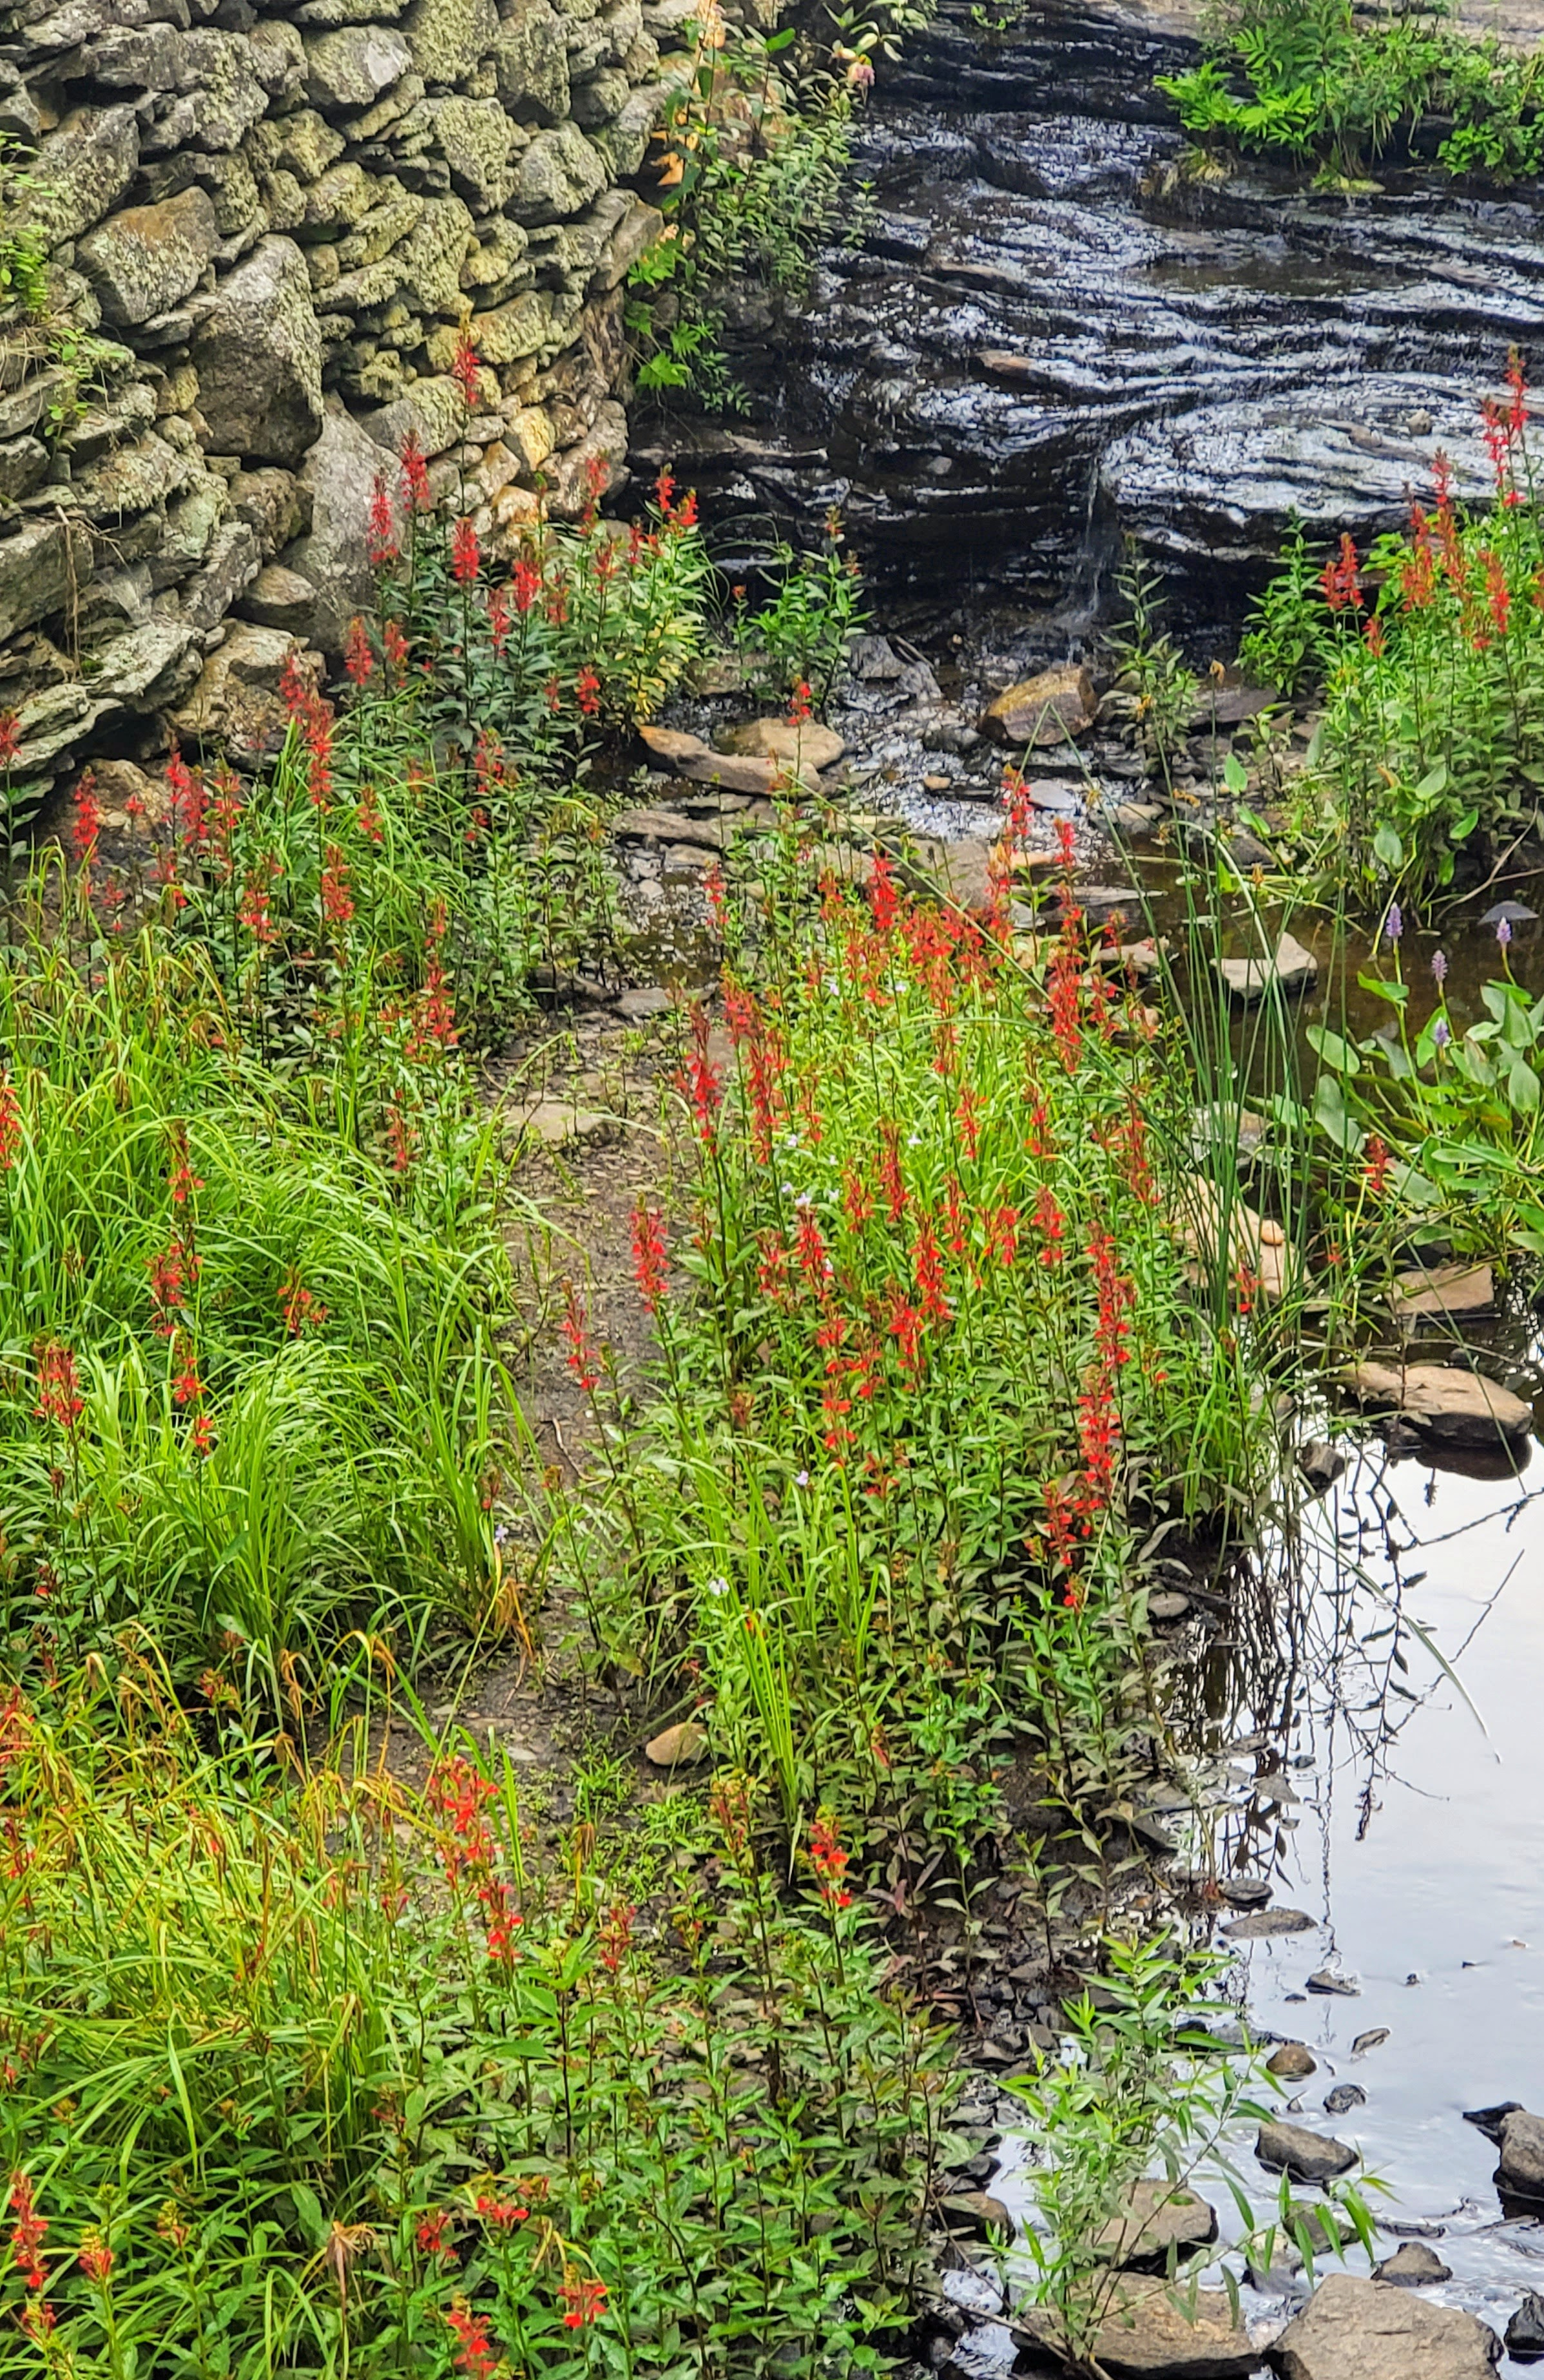 red flowers growing along the streambed